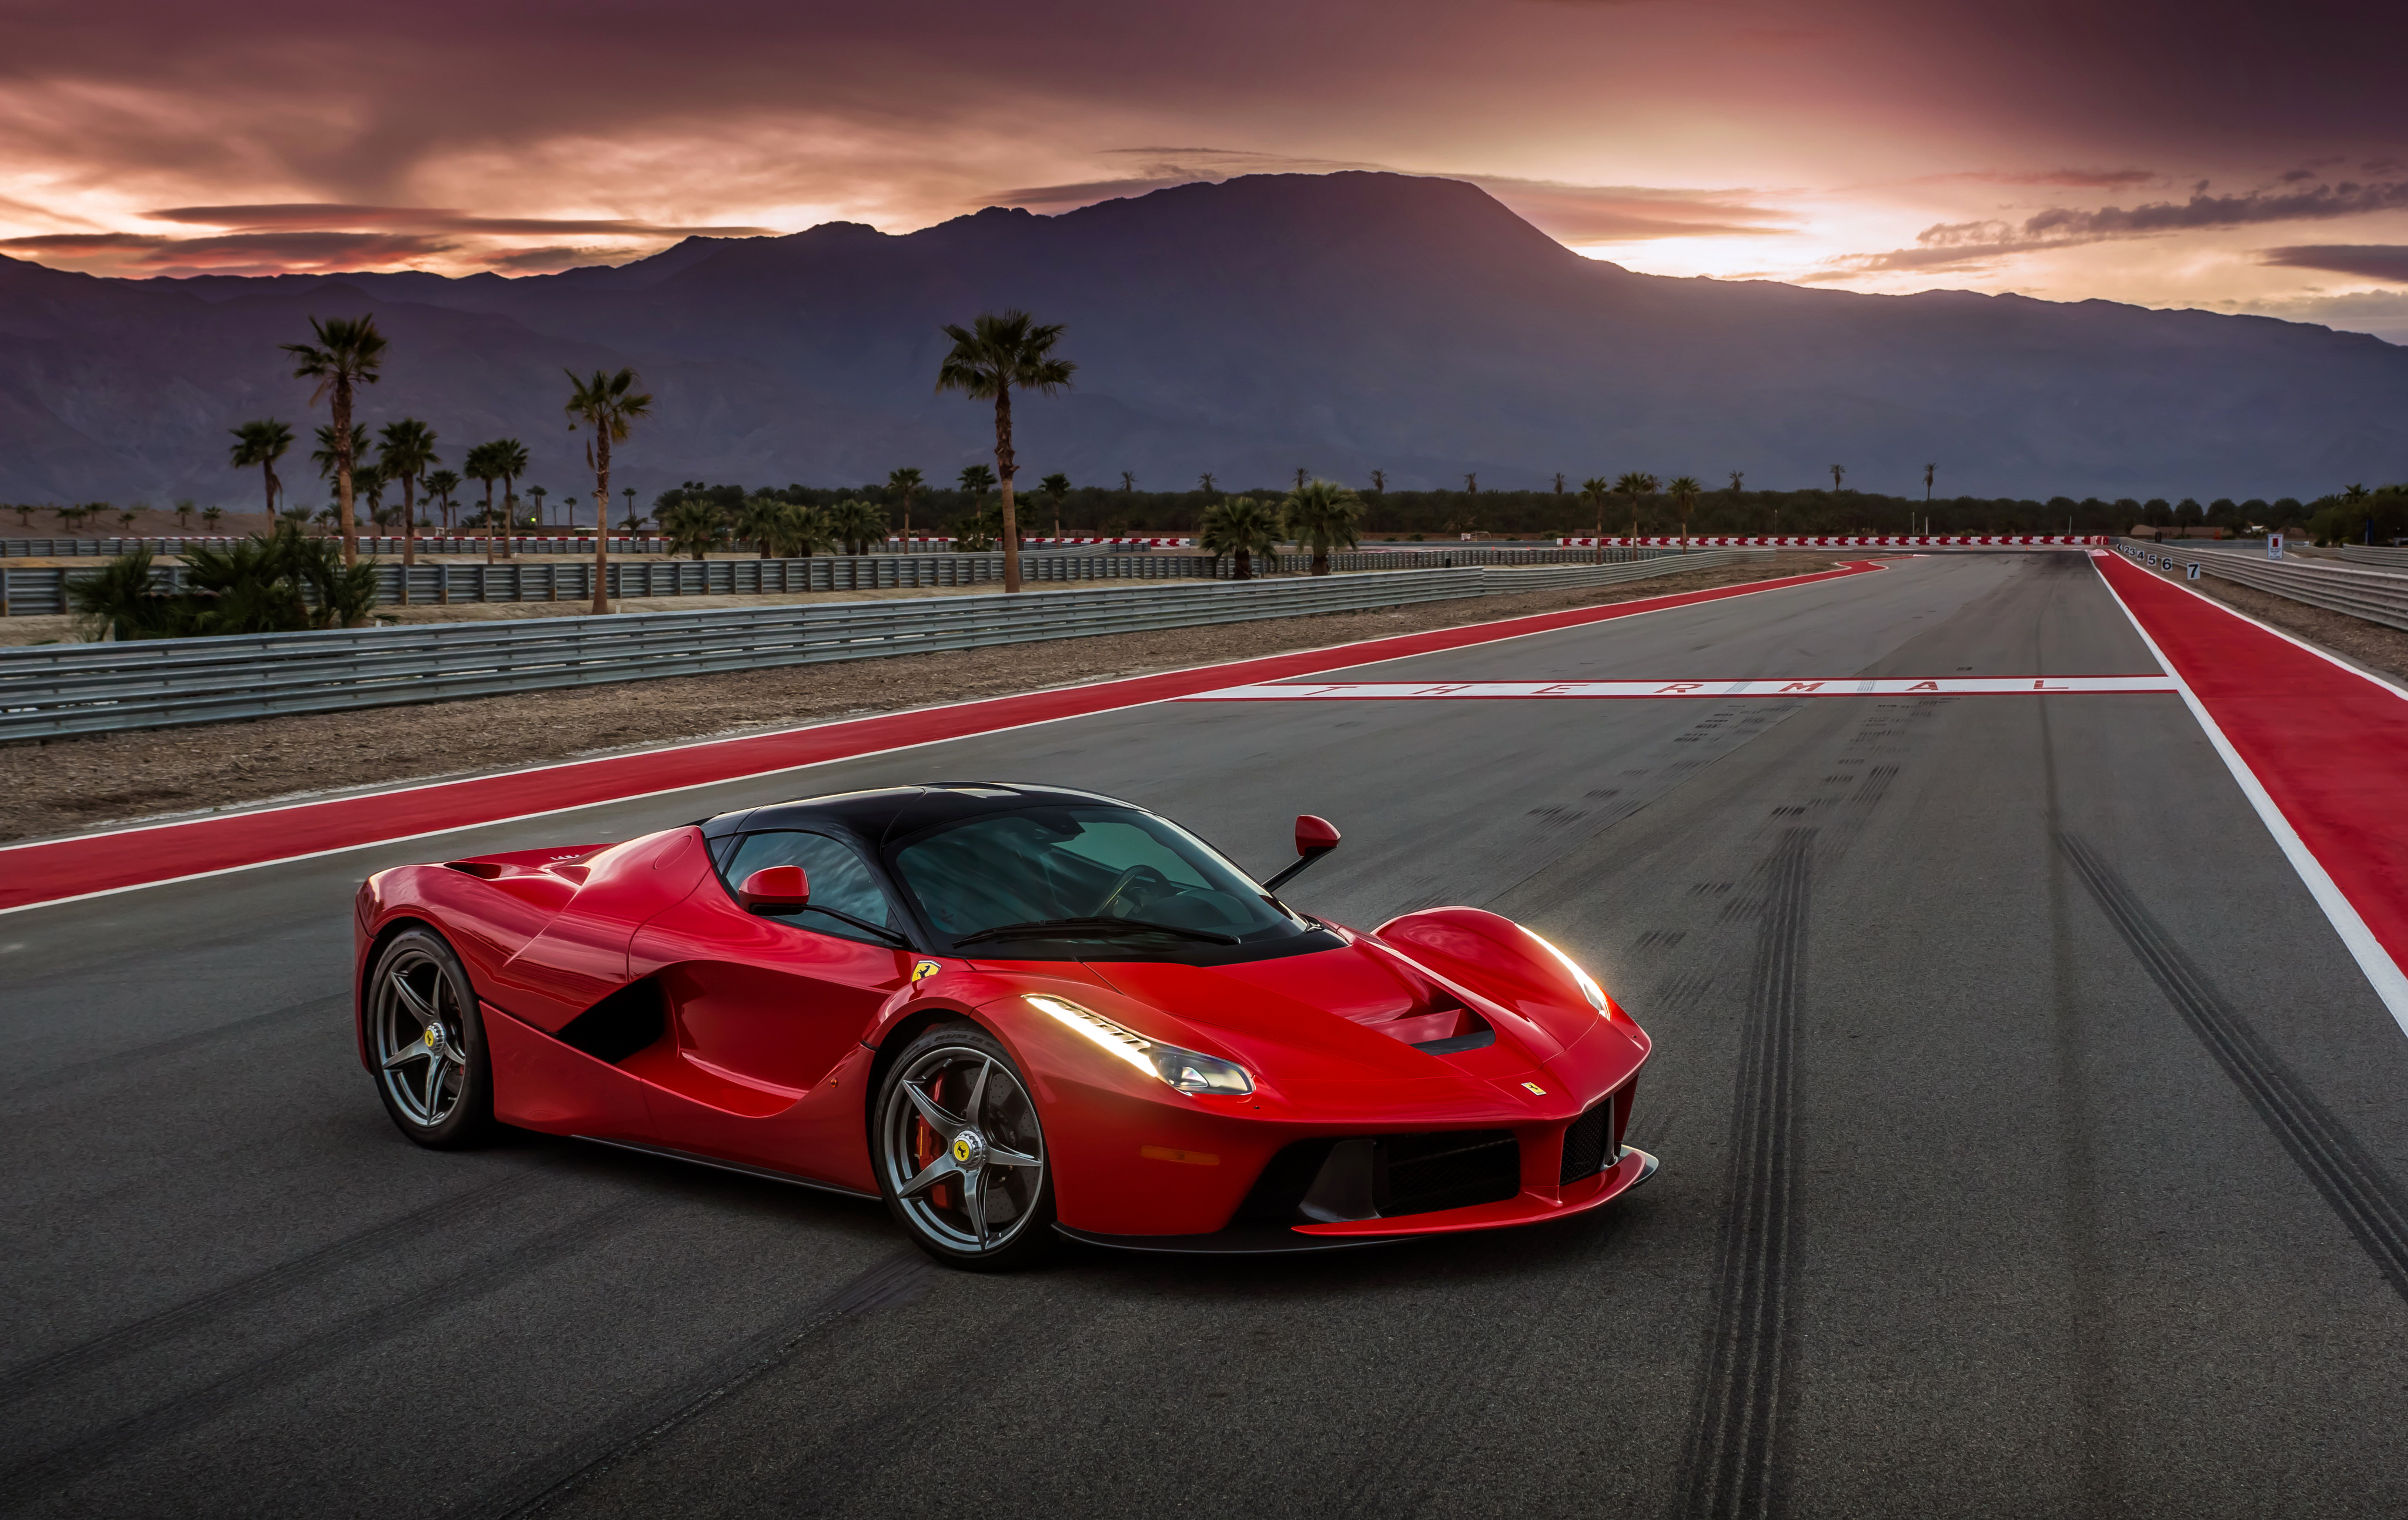 product mix of ferrari Marketing mix of bmw analyses the brand/company which covers 4ps (product, price, place, promotion) and explains the bmw marketing strategy the article elaborates the pricing, advertising & distribution strategies used by the company.